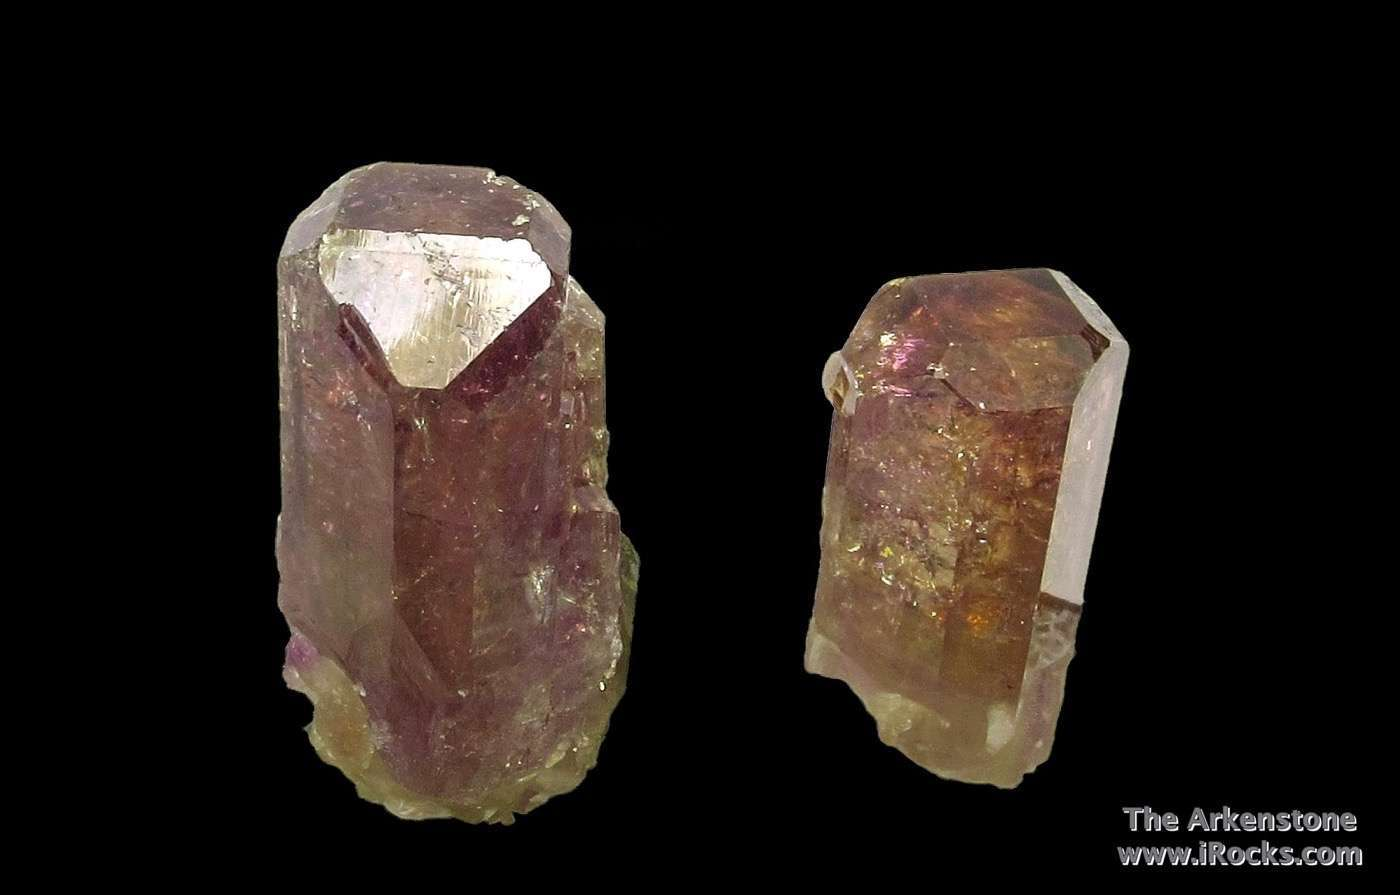 This good pair Vesuvianite crystals quite famous closed Jeffrey Mine